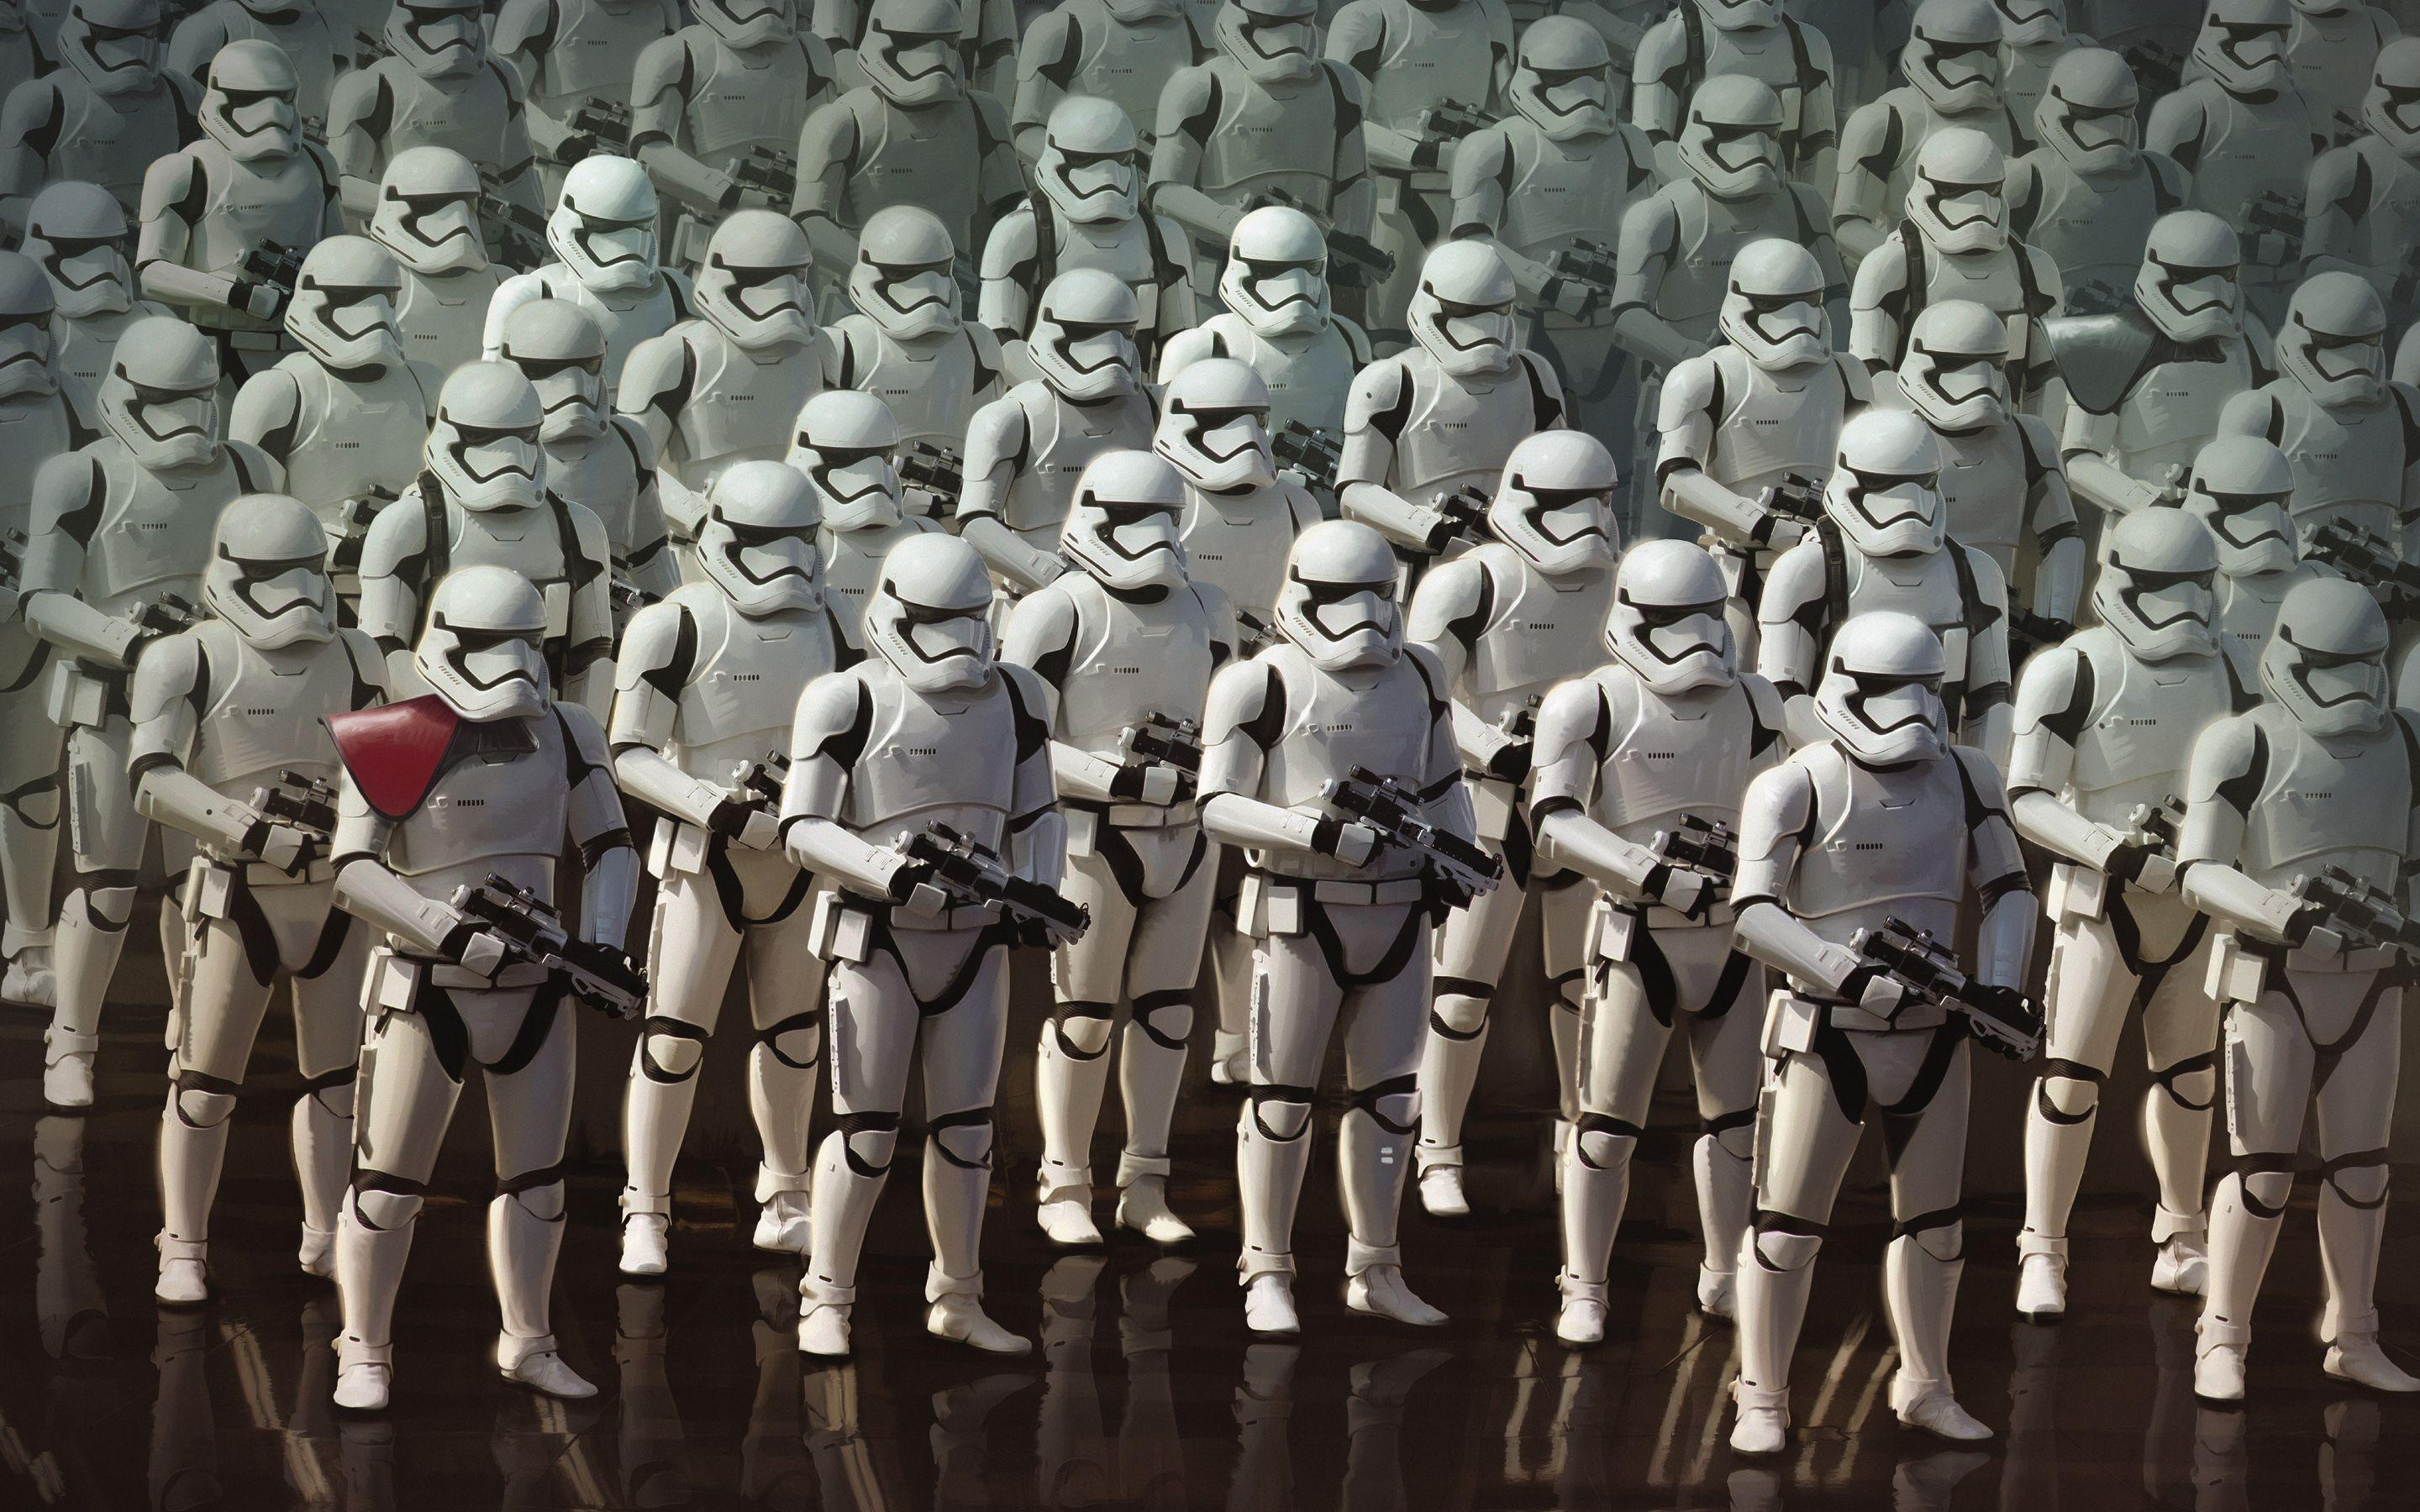 Star Wars The Force Awakens Stormtroopers Wallpapers | HD Wallpapers